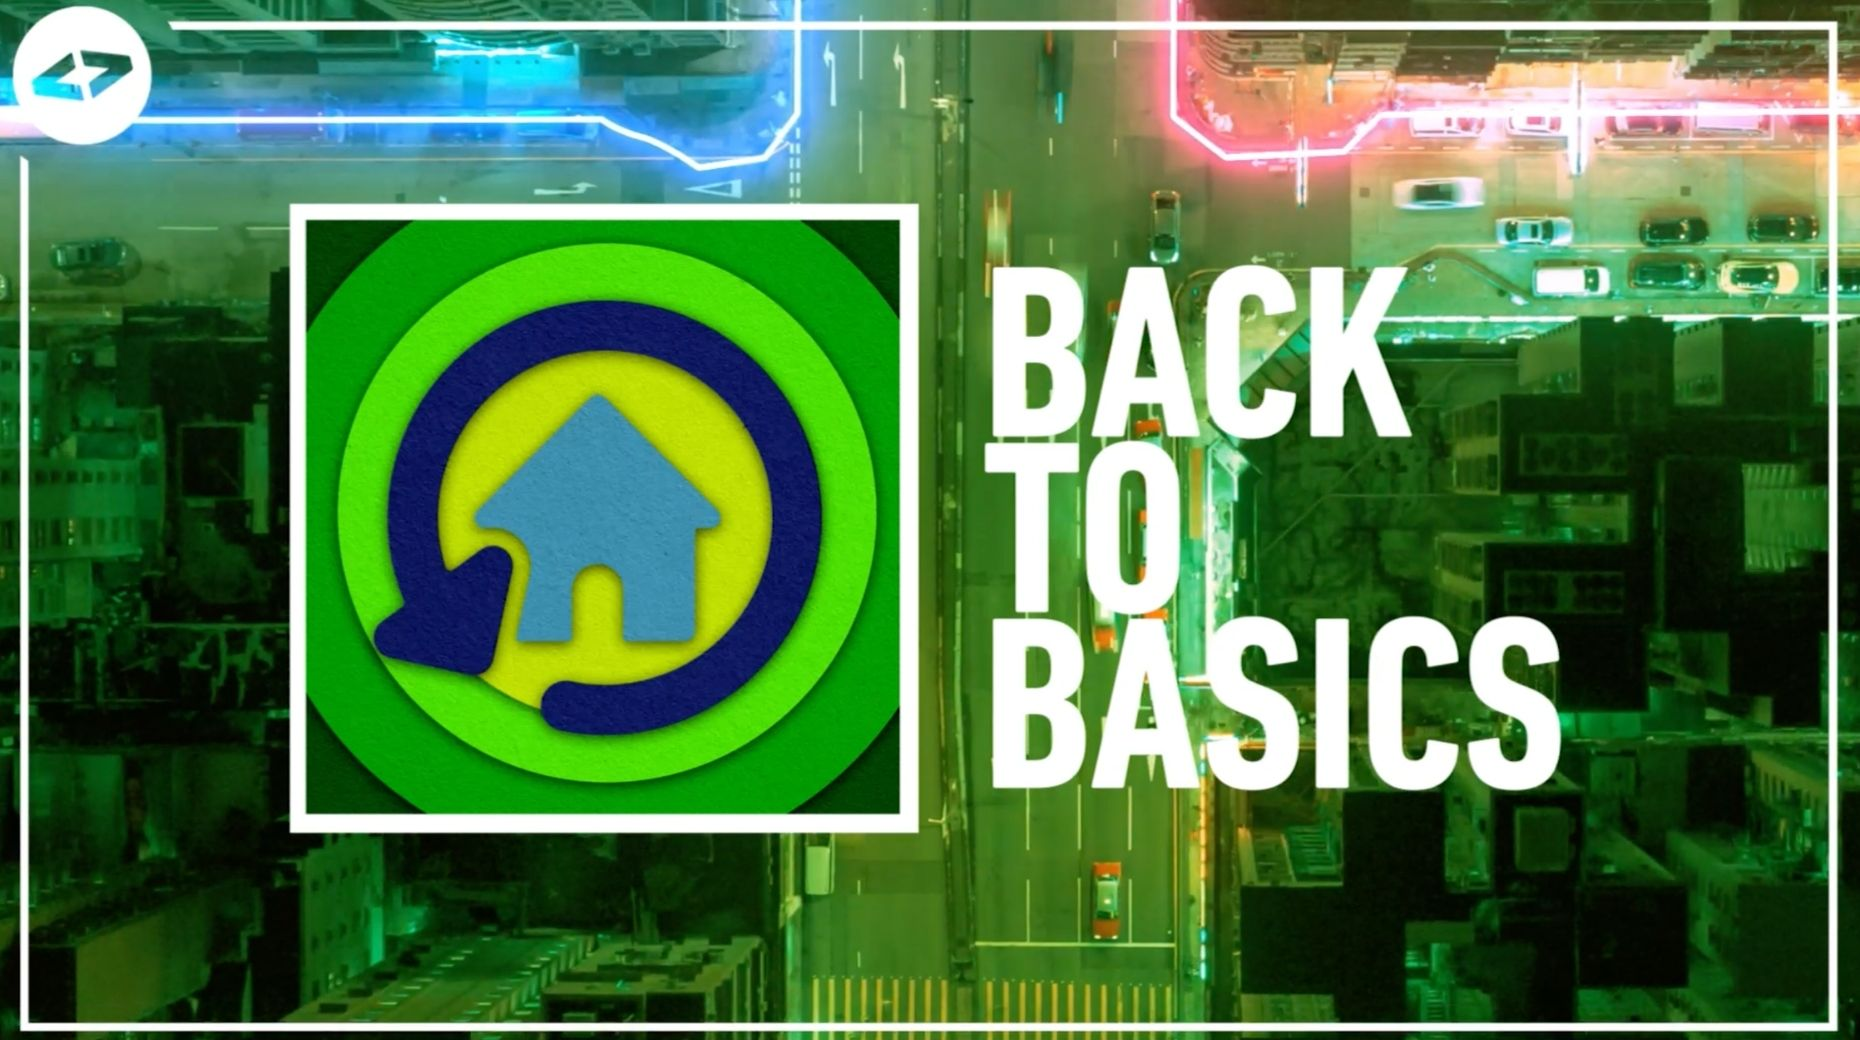 WATCH: Back To Basics 101 — Don't forget who you work for